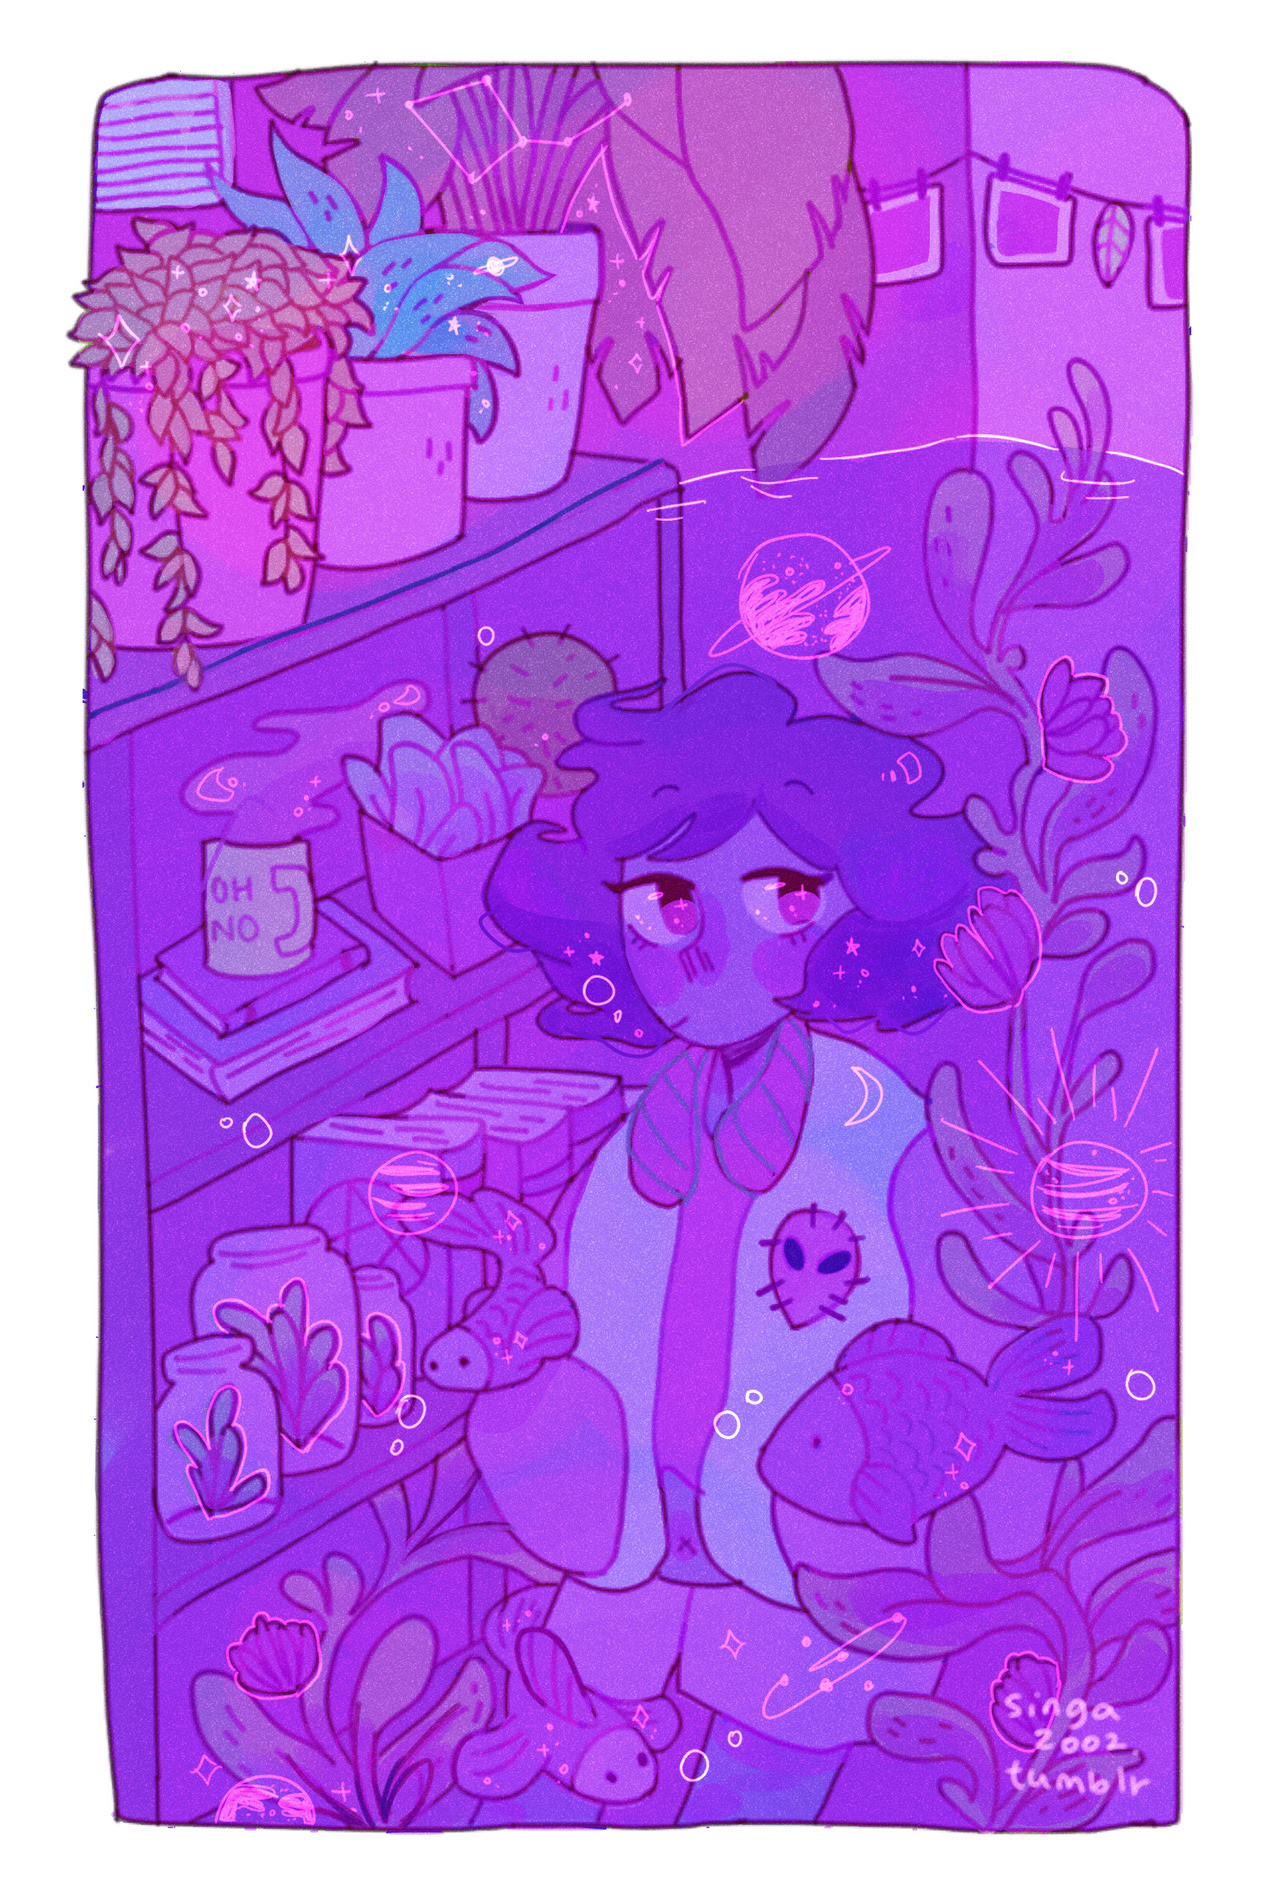 this was my piece for the ocean gem zine!! finished this last summer ♥